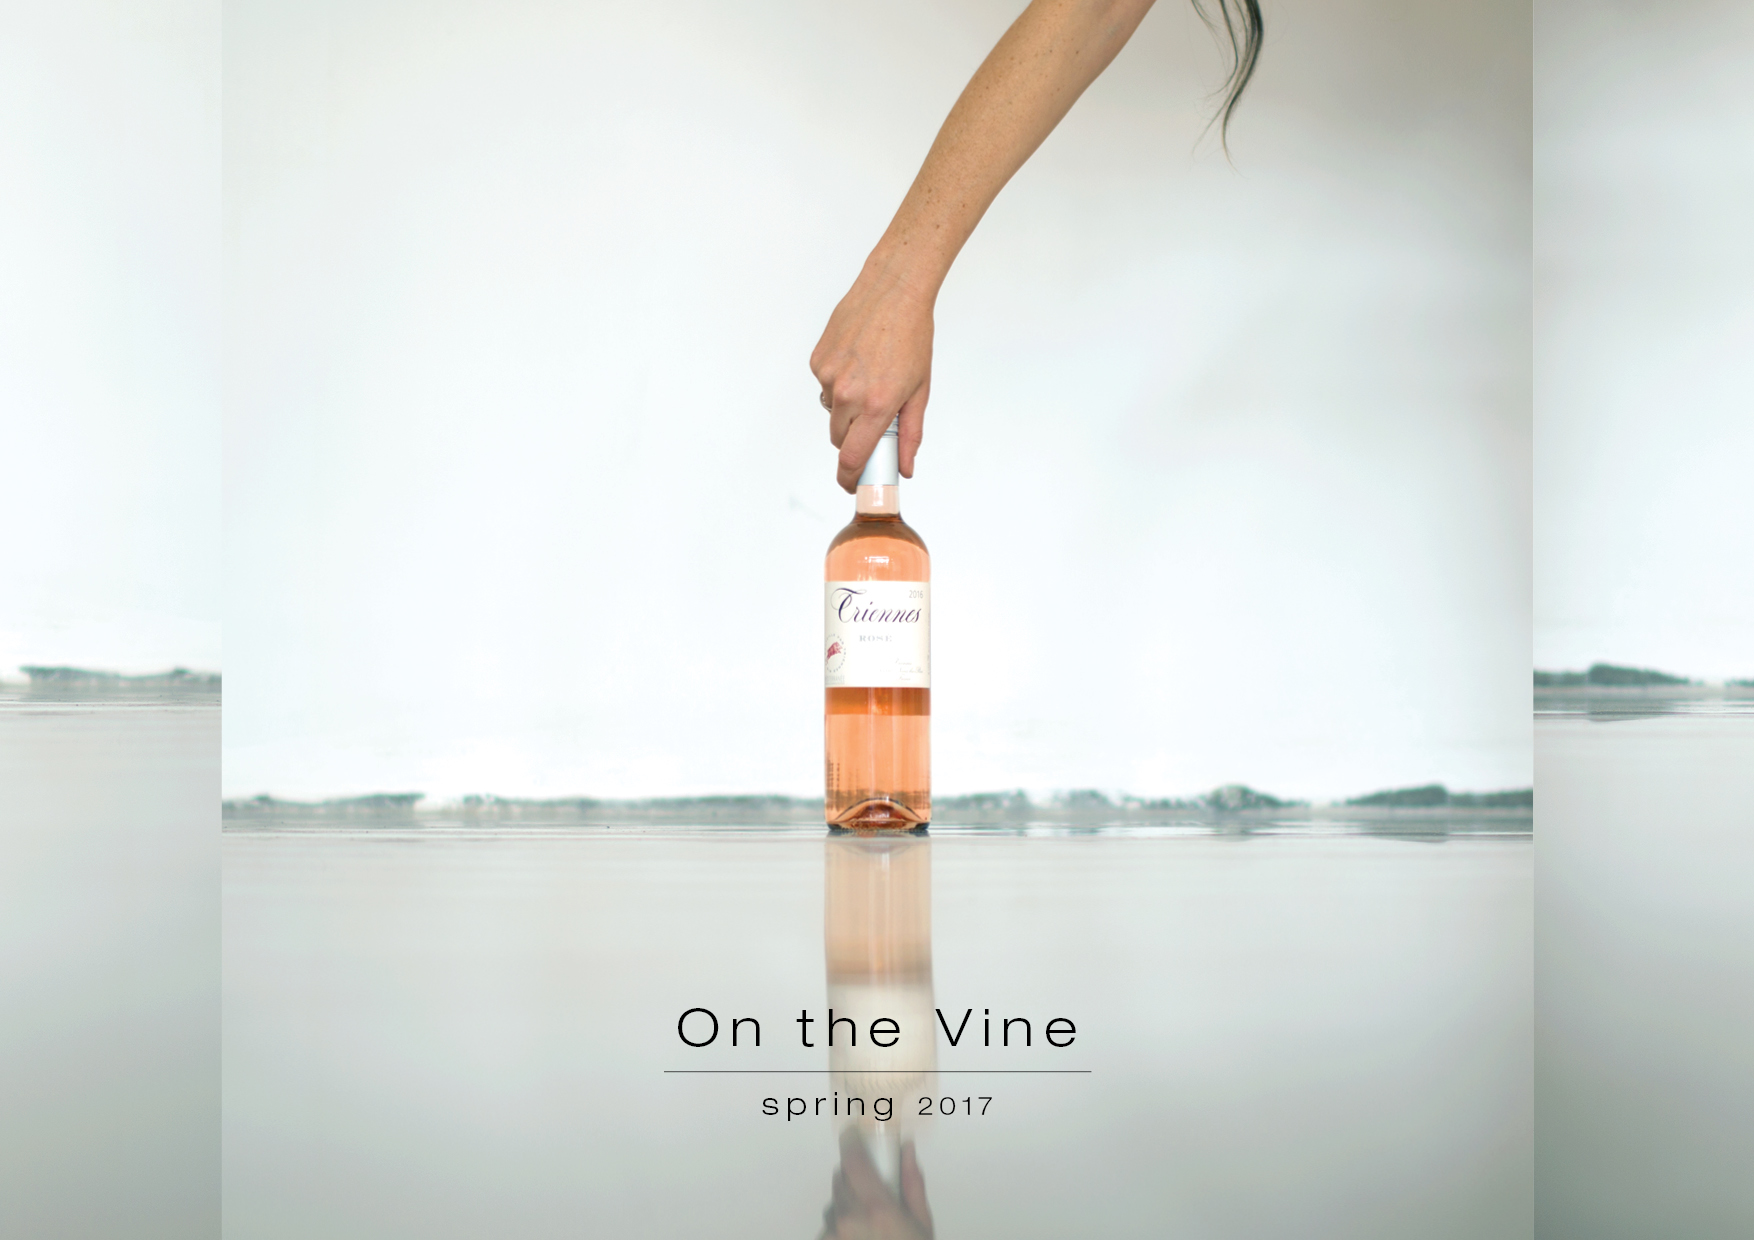 On-the-vine-spring-2017-catalogue-cover.jpg